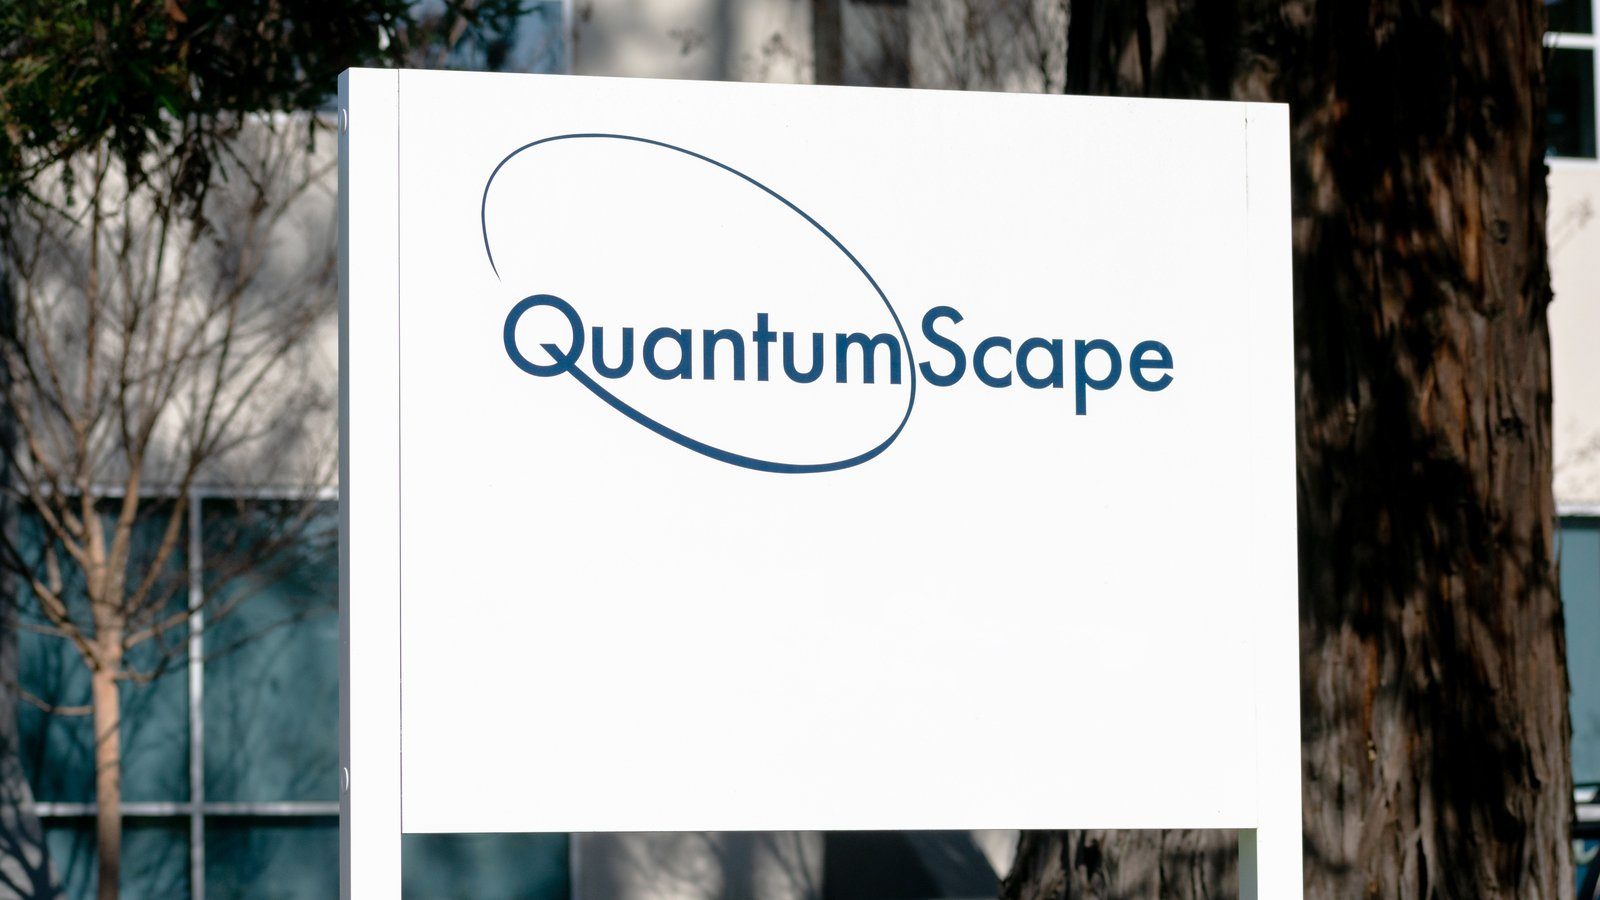 qs stock new solid state battery rival spells trouble for quantumscape 1624583836 1499662367